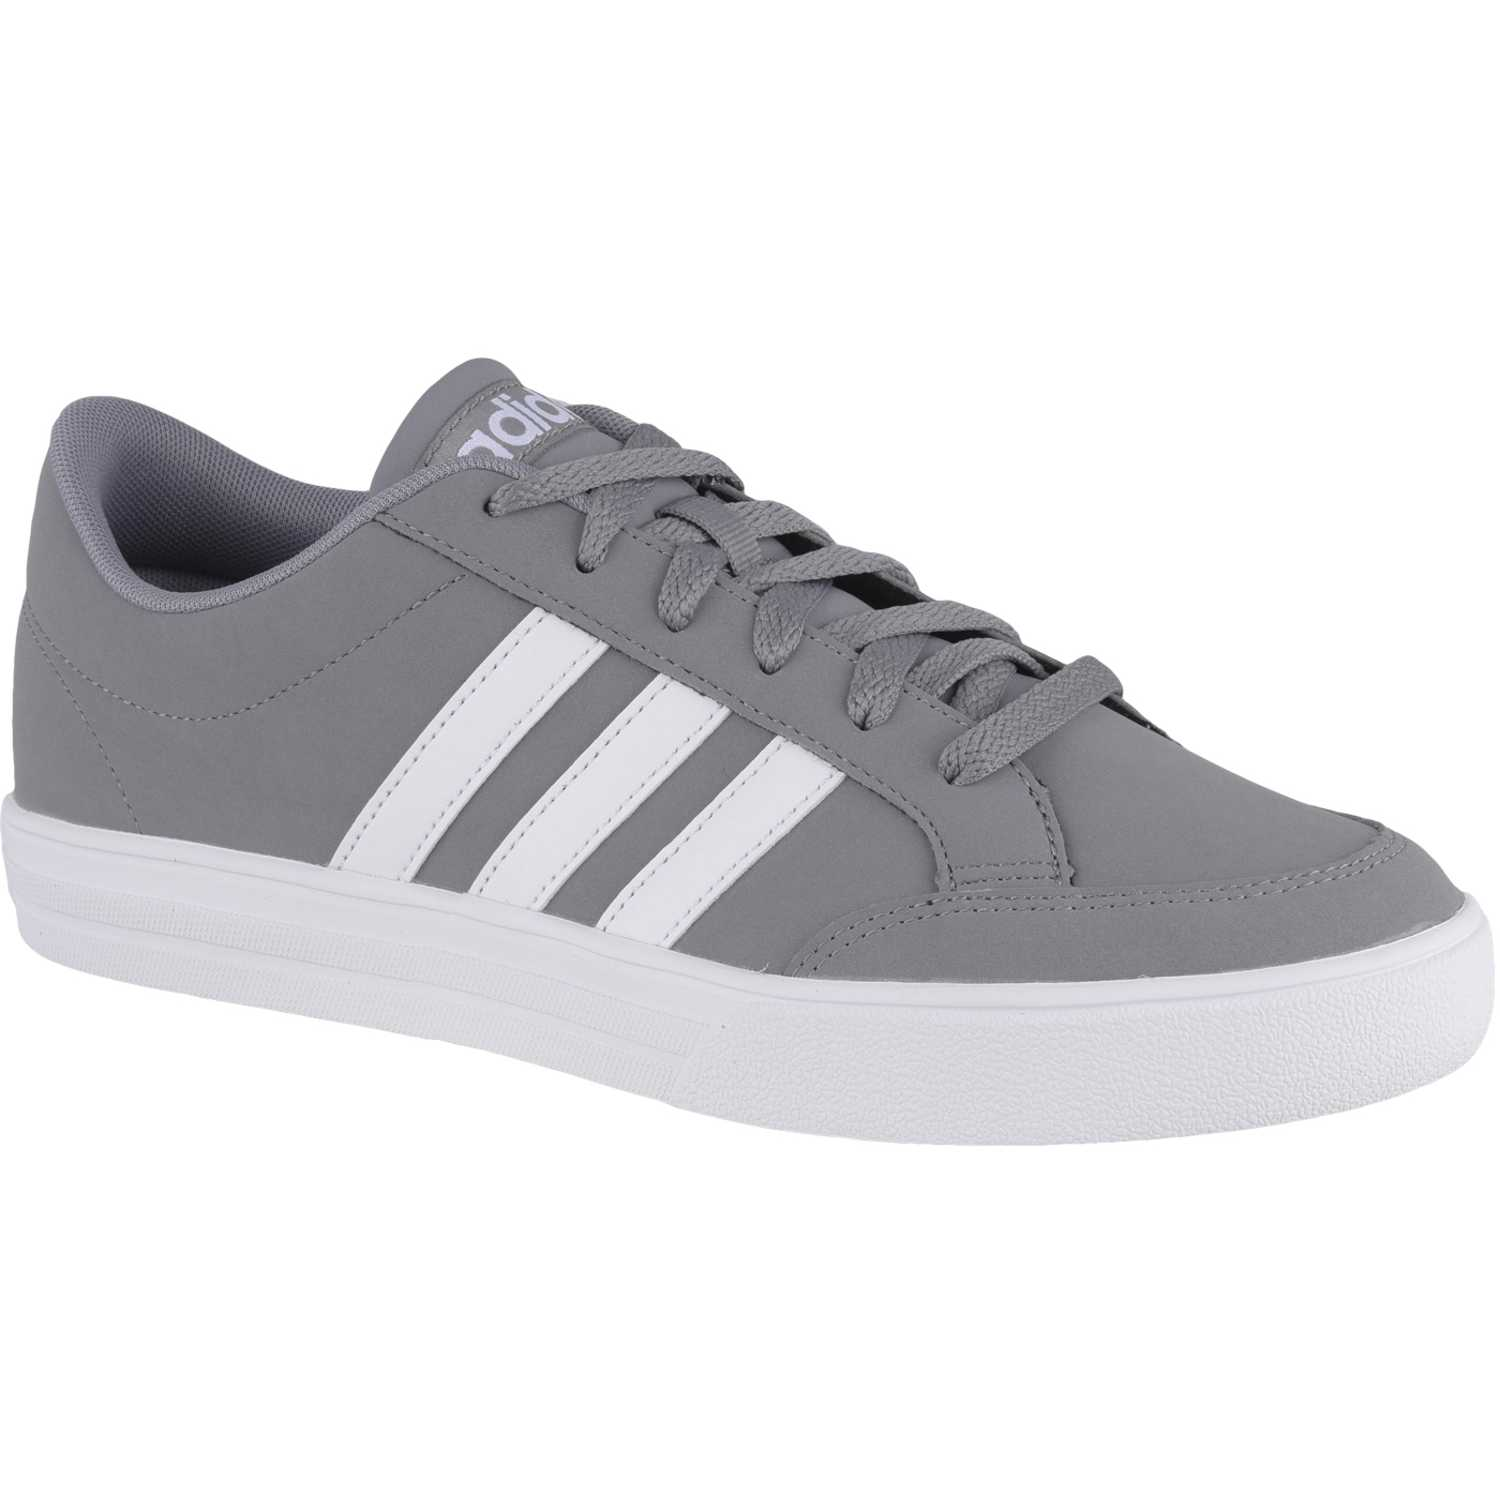 new product 3fee8 f037a ... authentic zapatilla de hombre adidas neo gris vs set d4247 e0b0c